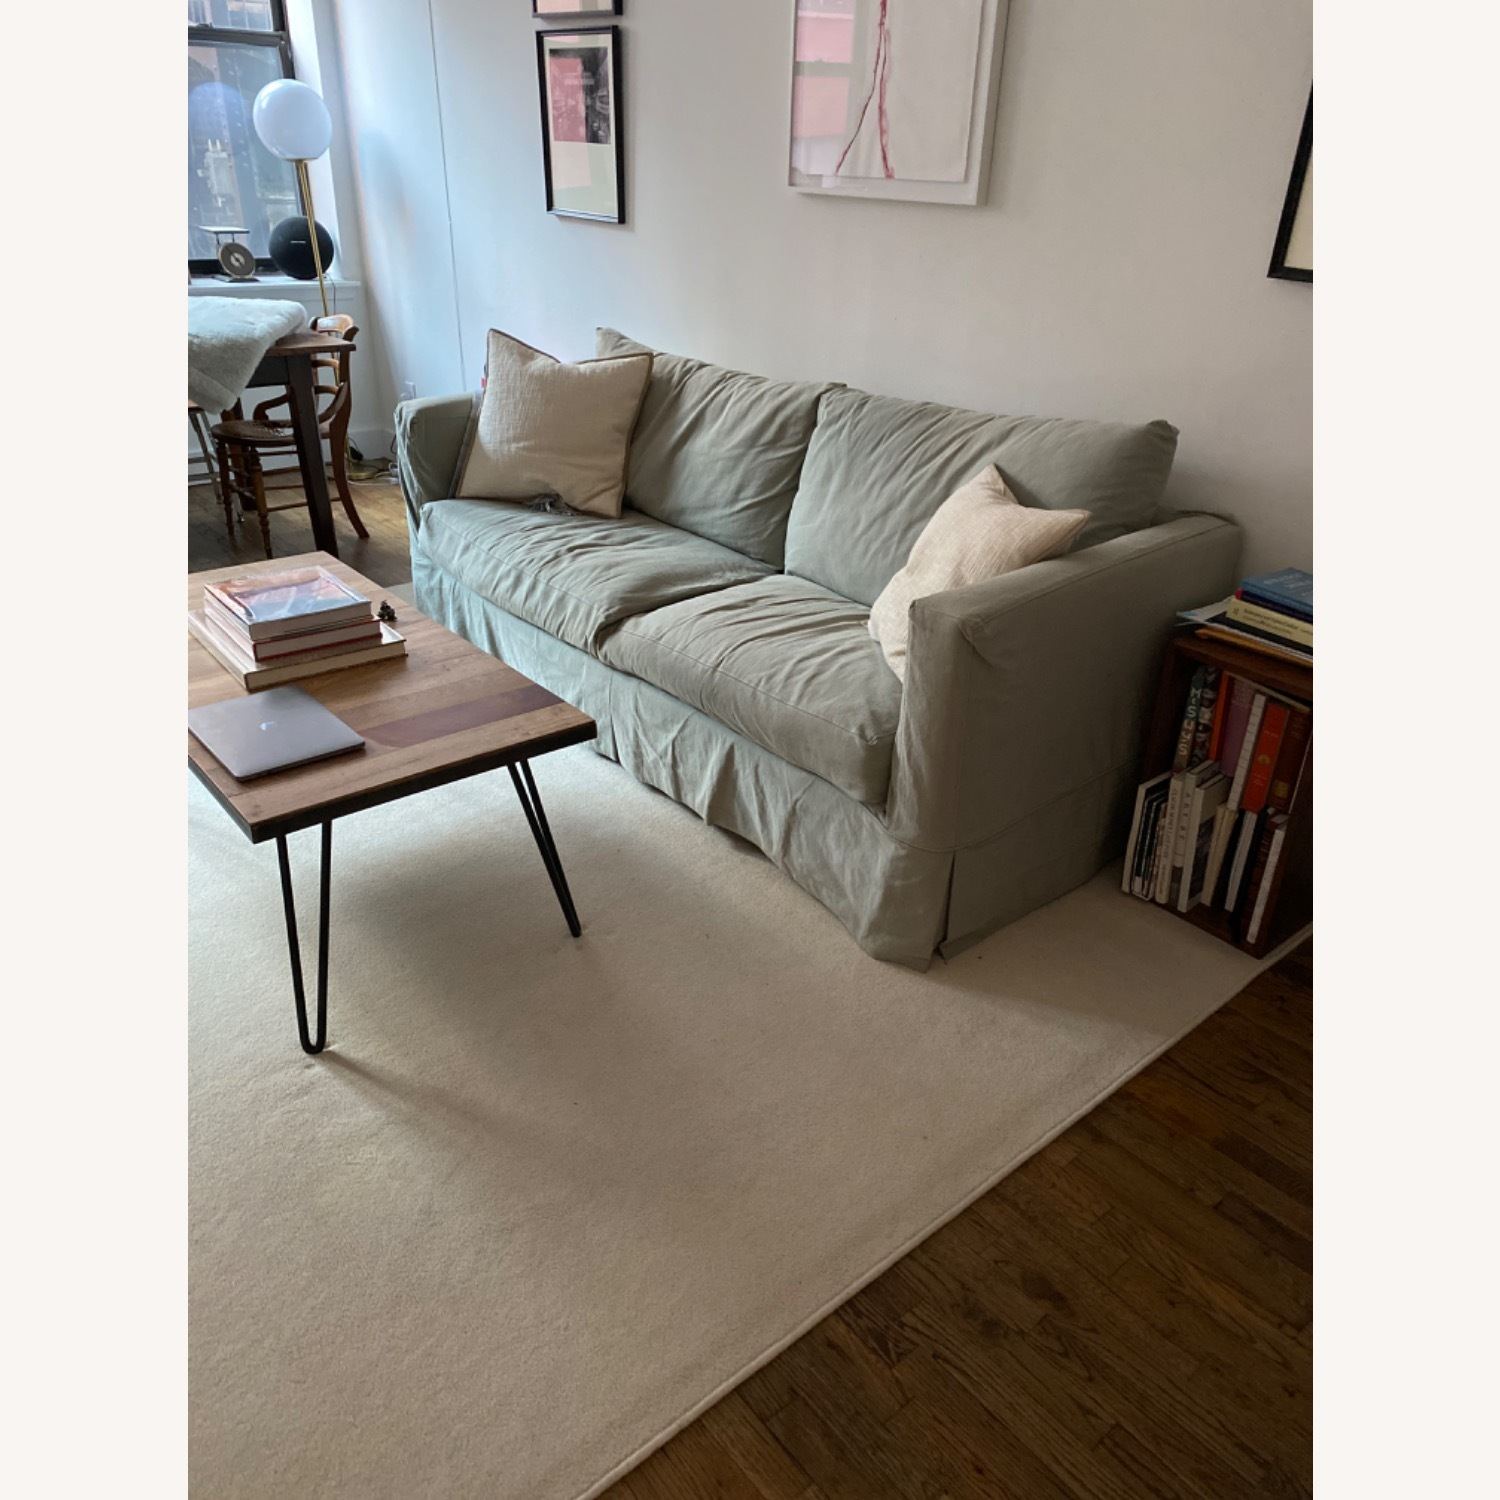 Crate and Barrel Sea Foam Green Couch - image-3